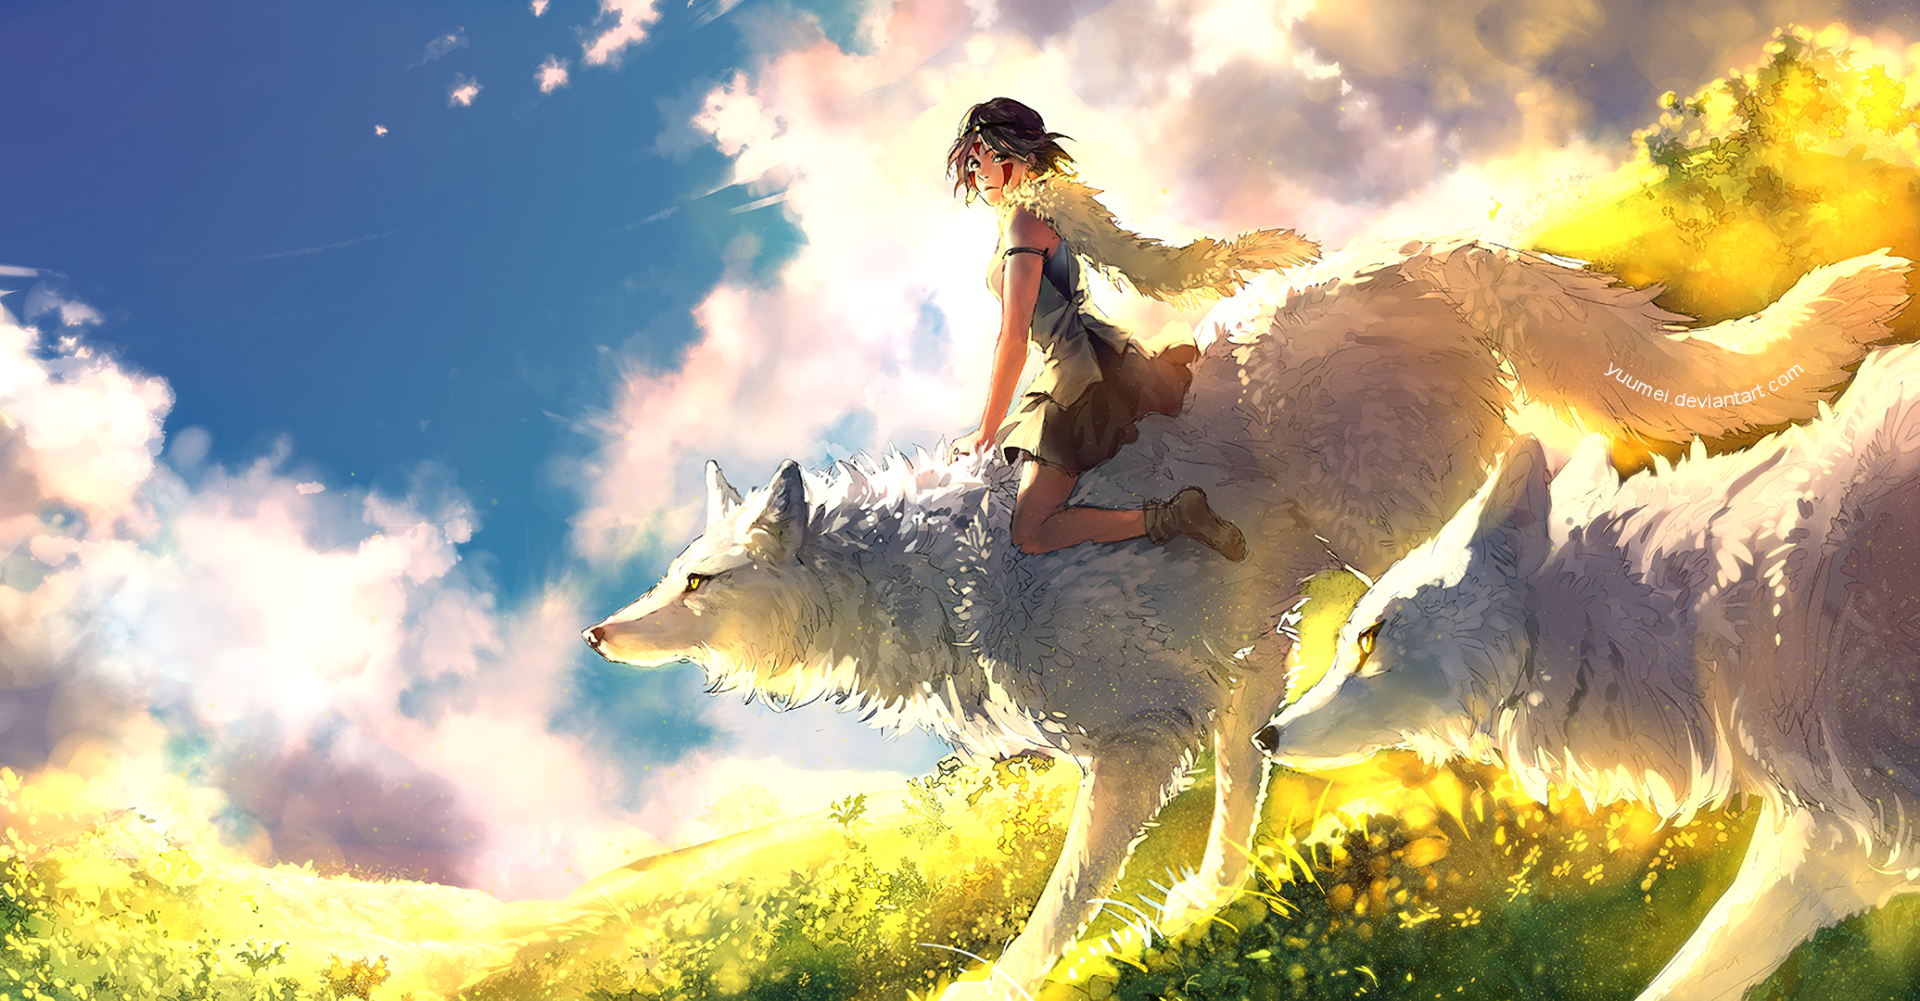 Wallpapers ID:909261